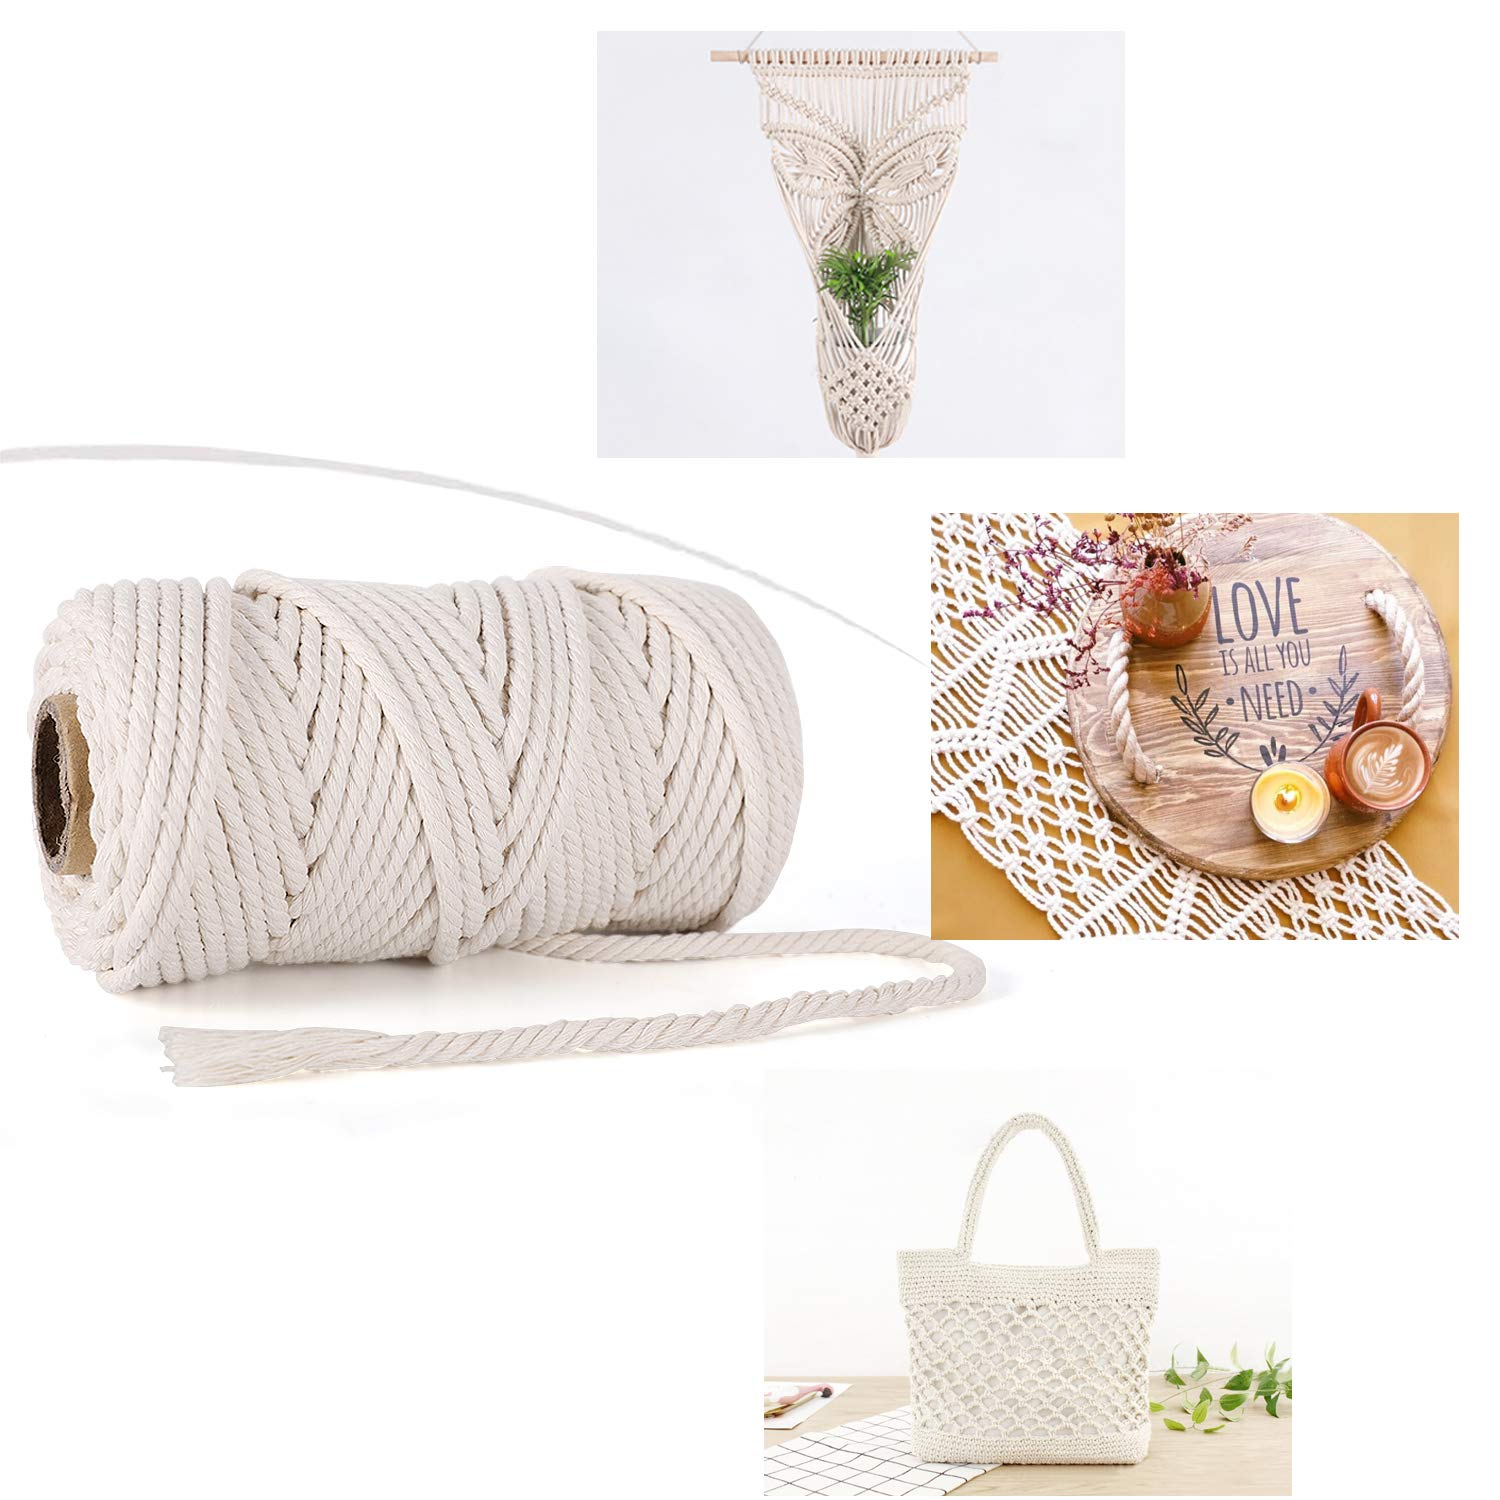 GoMaihe Macrame Cord 5mm x 328 ft Beige Home Bedroom Living Room Decorations 4-Strand Twisted Soft Unstained Cotton Rope for Plant Hanger Wall Hanging Knitting Craft Beginners